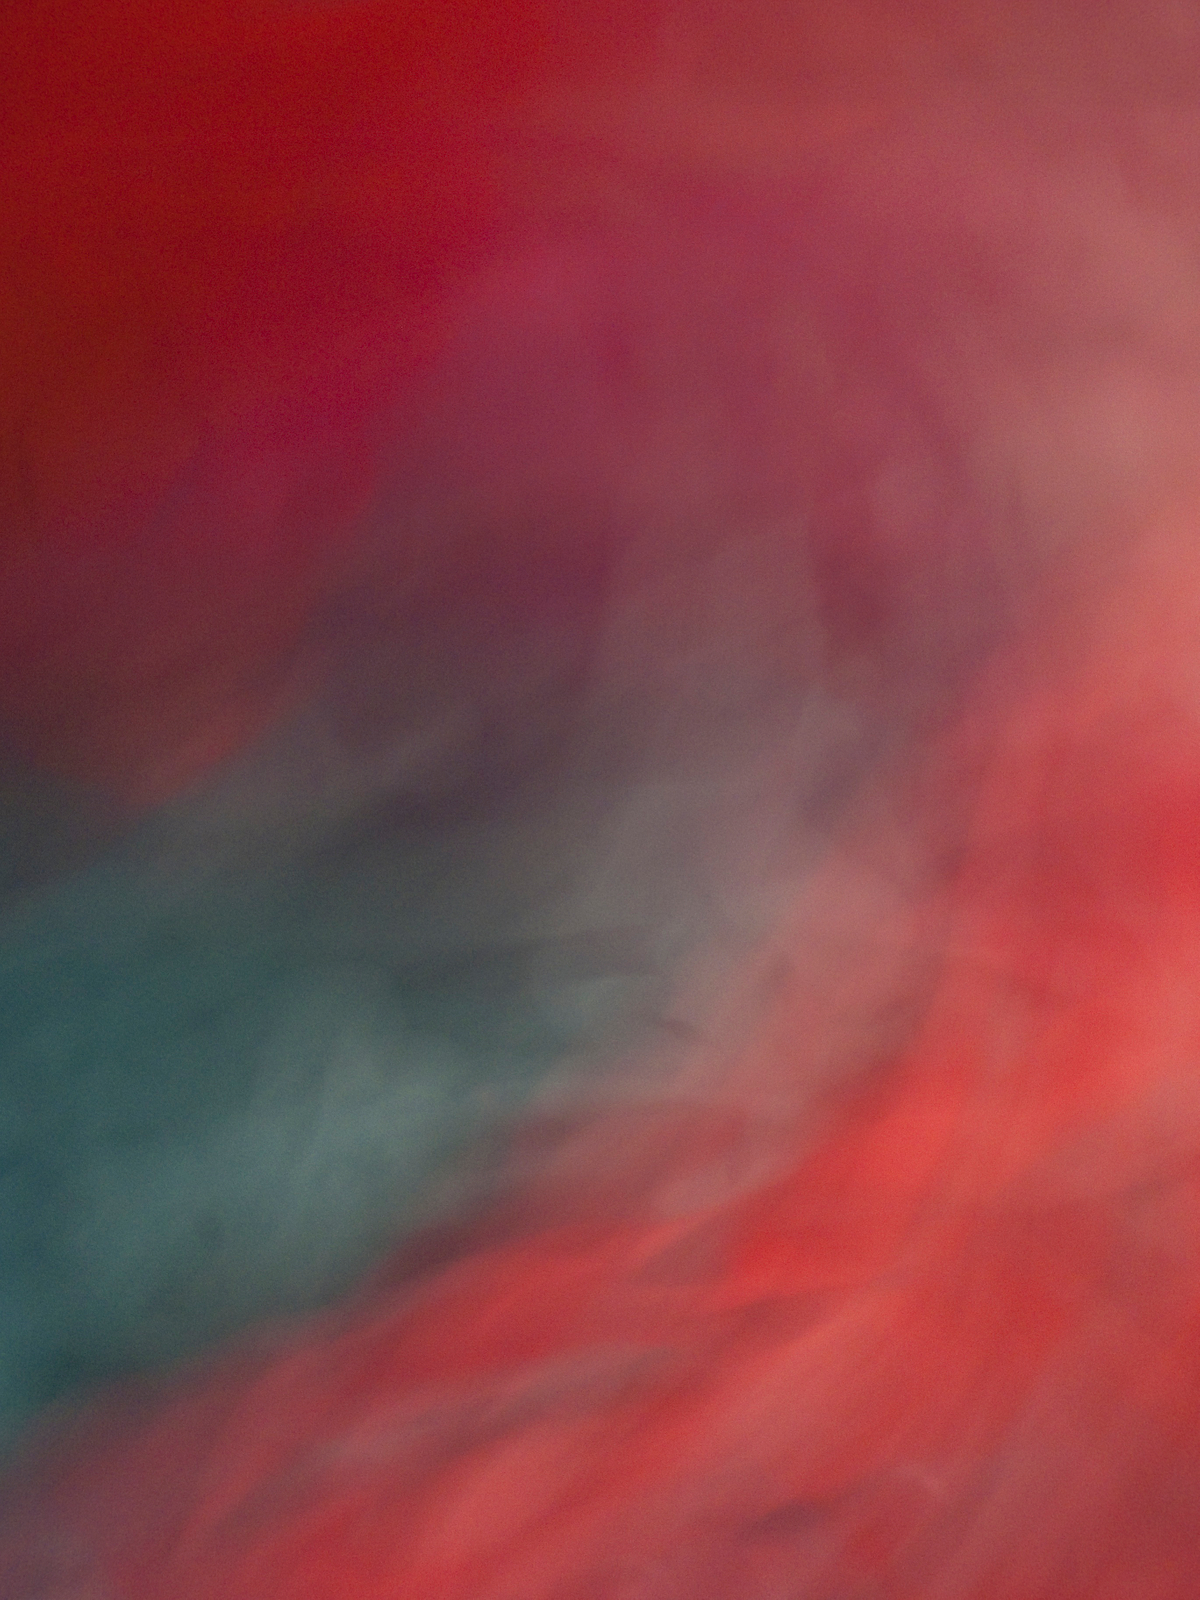 La Vie en Rose, 2012, Abstract Color Photography, Shirine Gill